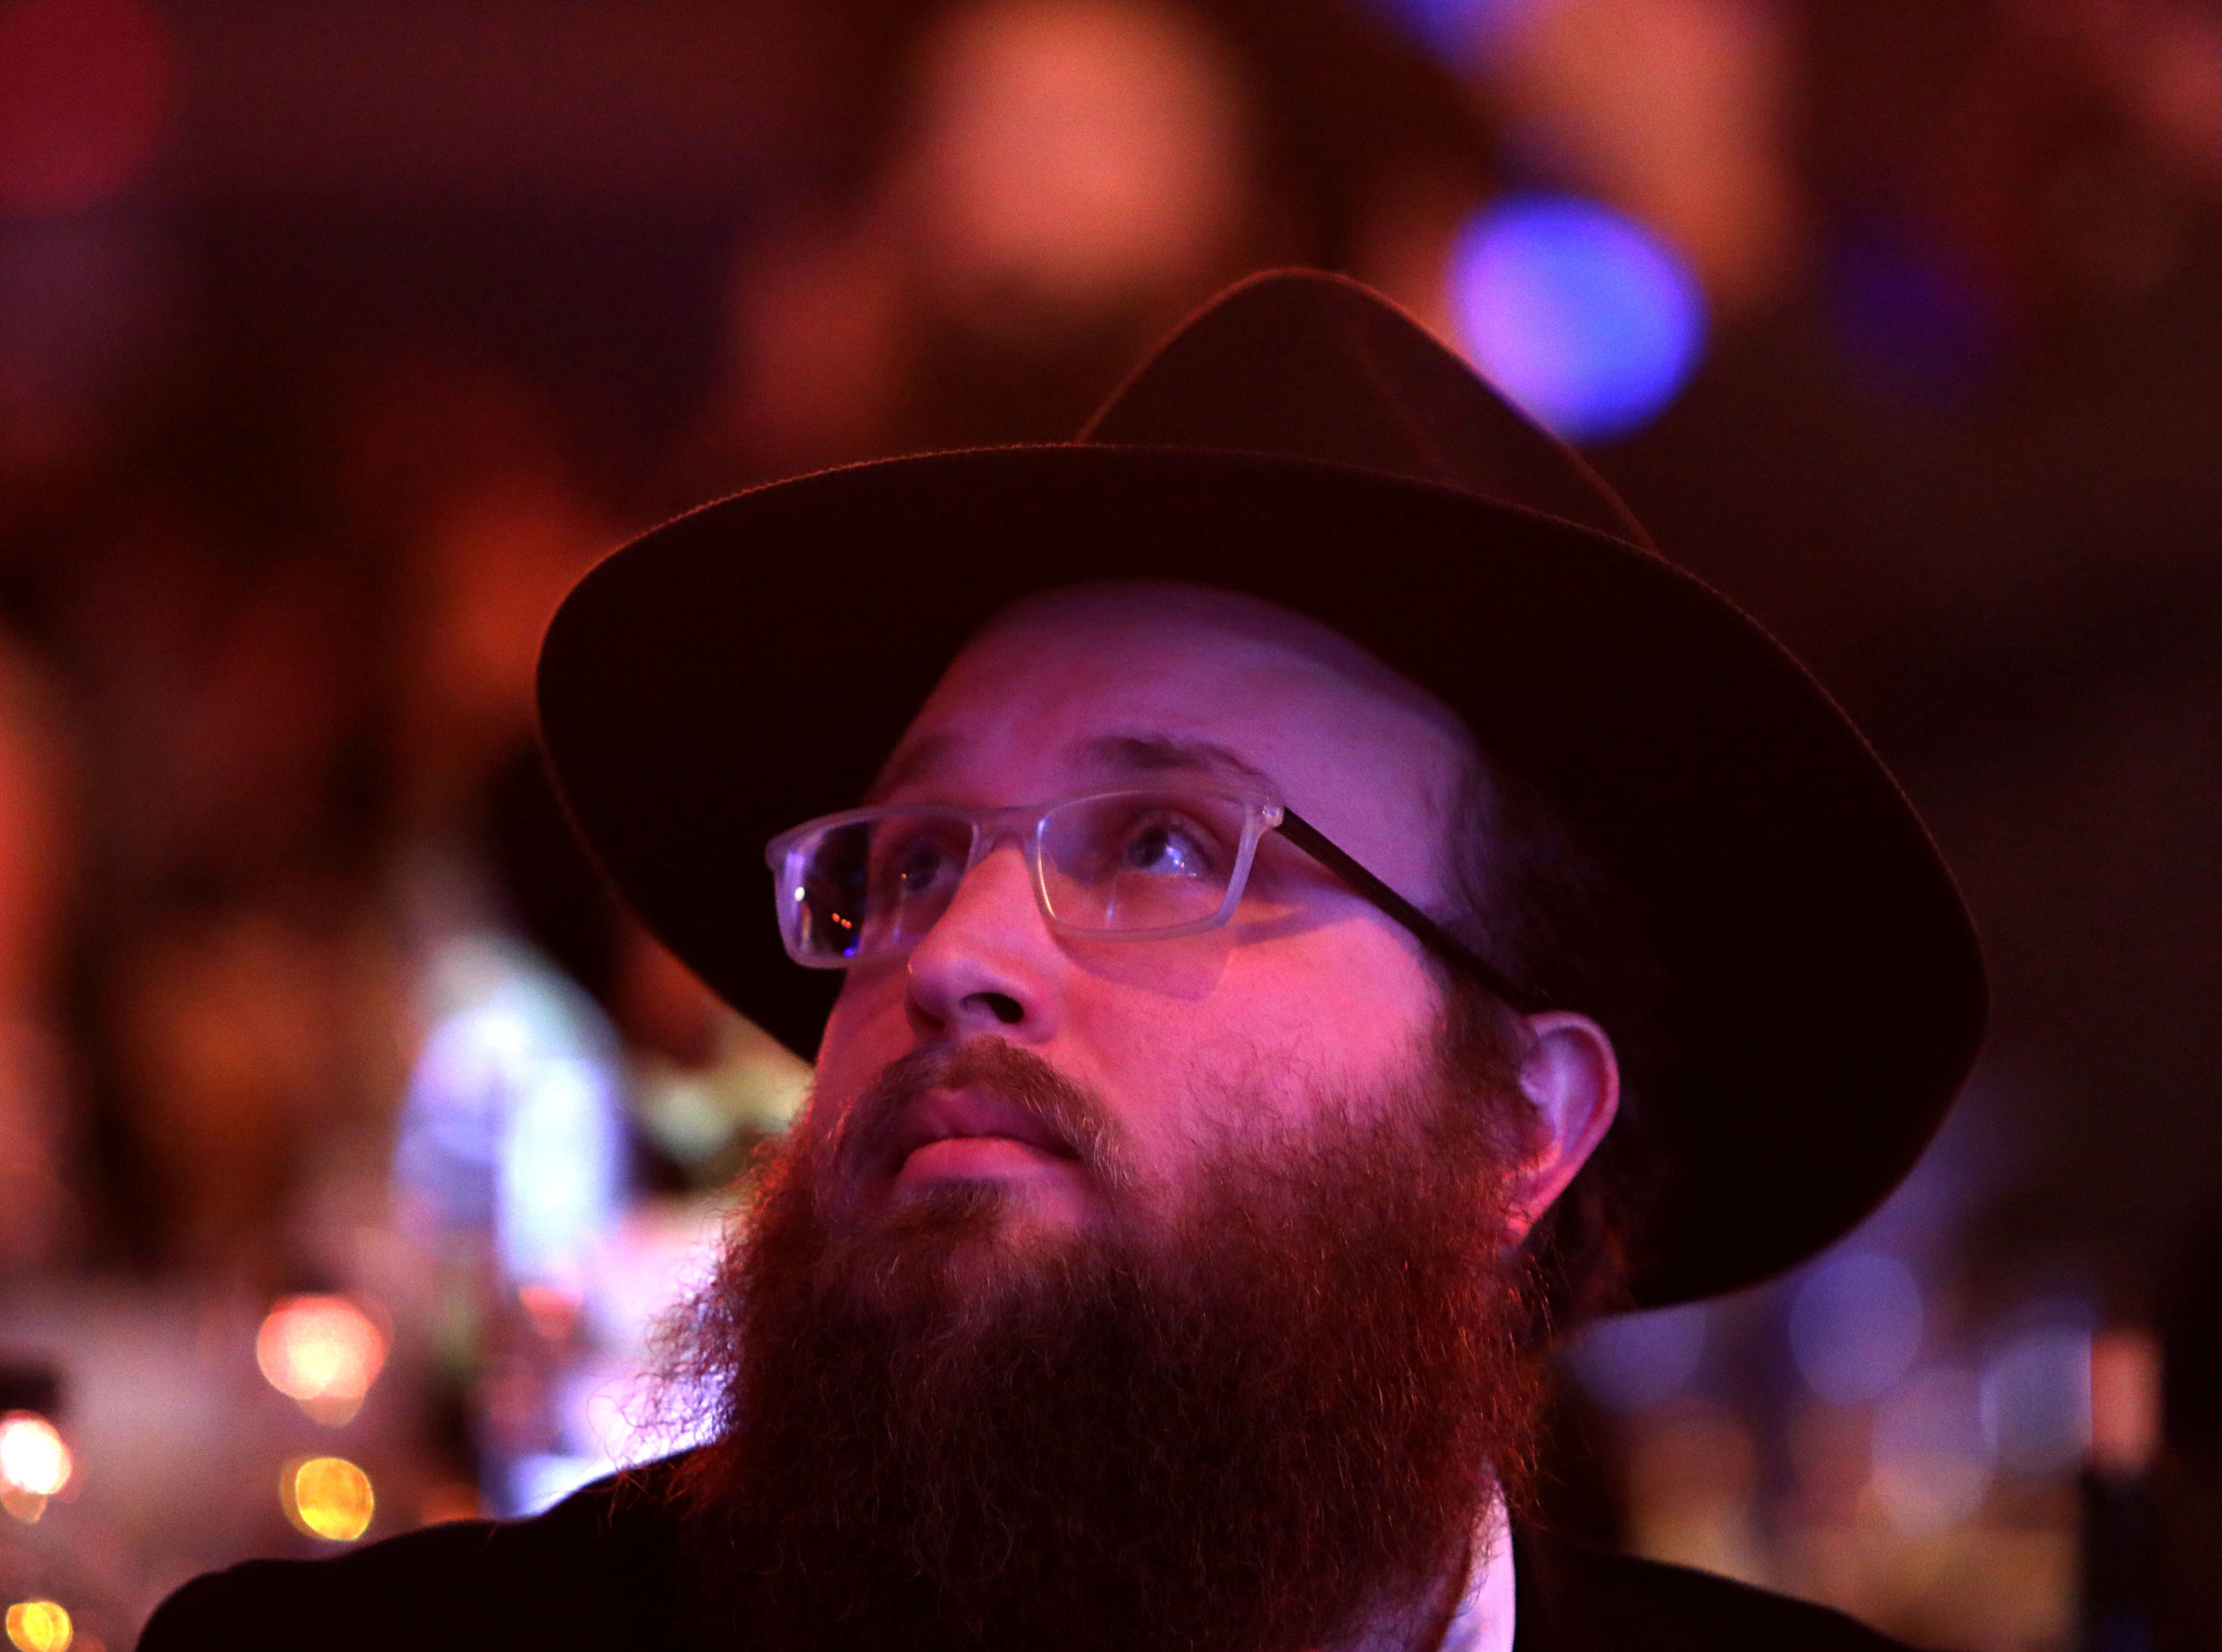 Rabbi Mendy Schapiro of Monroeville, Pennsylvania attends a gala at Rockland Community College Nov. 4, 1018 in Suffern. About 5,600 rabbis and their colleagues from 100 countries gathered in New York for an International Conference of Chabad-Lubavitch Emissaries.